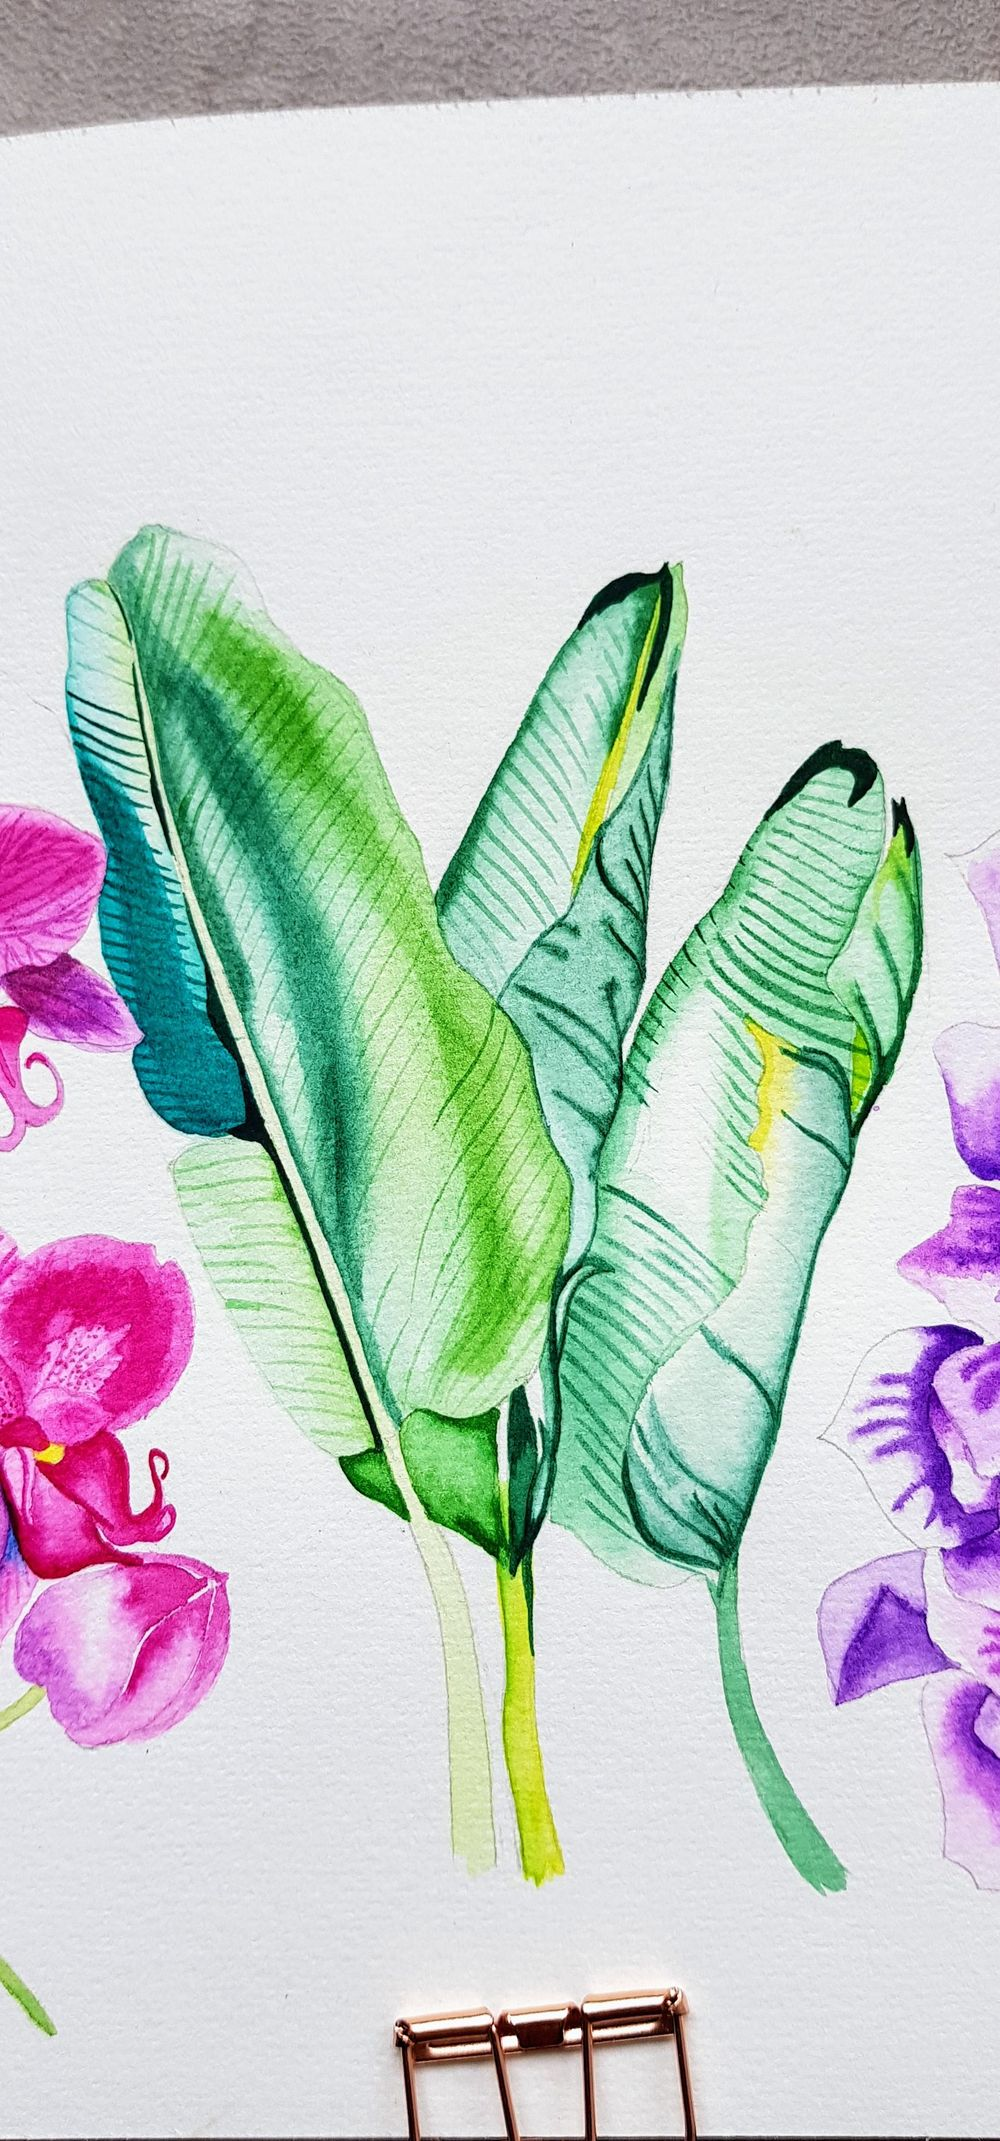 Banana Leaves - image 1 - student project